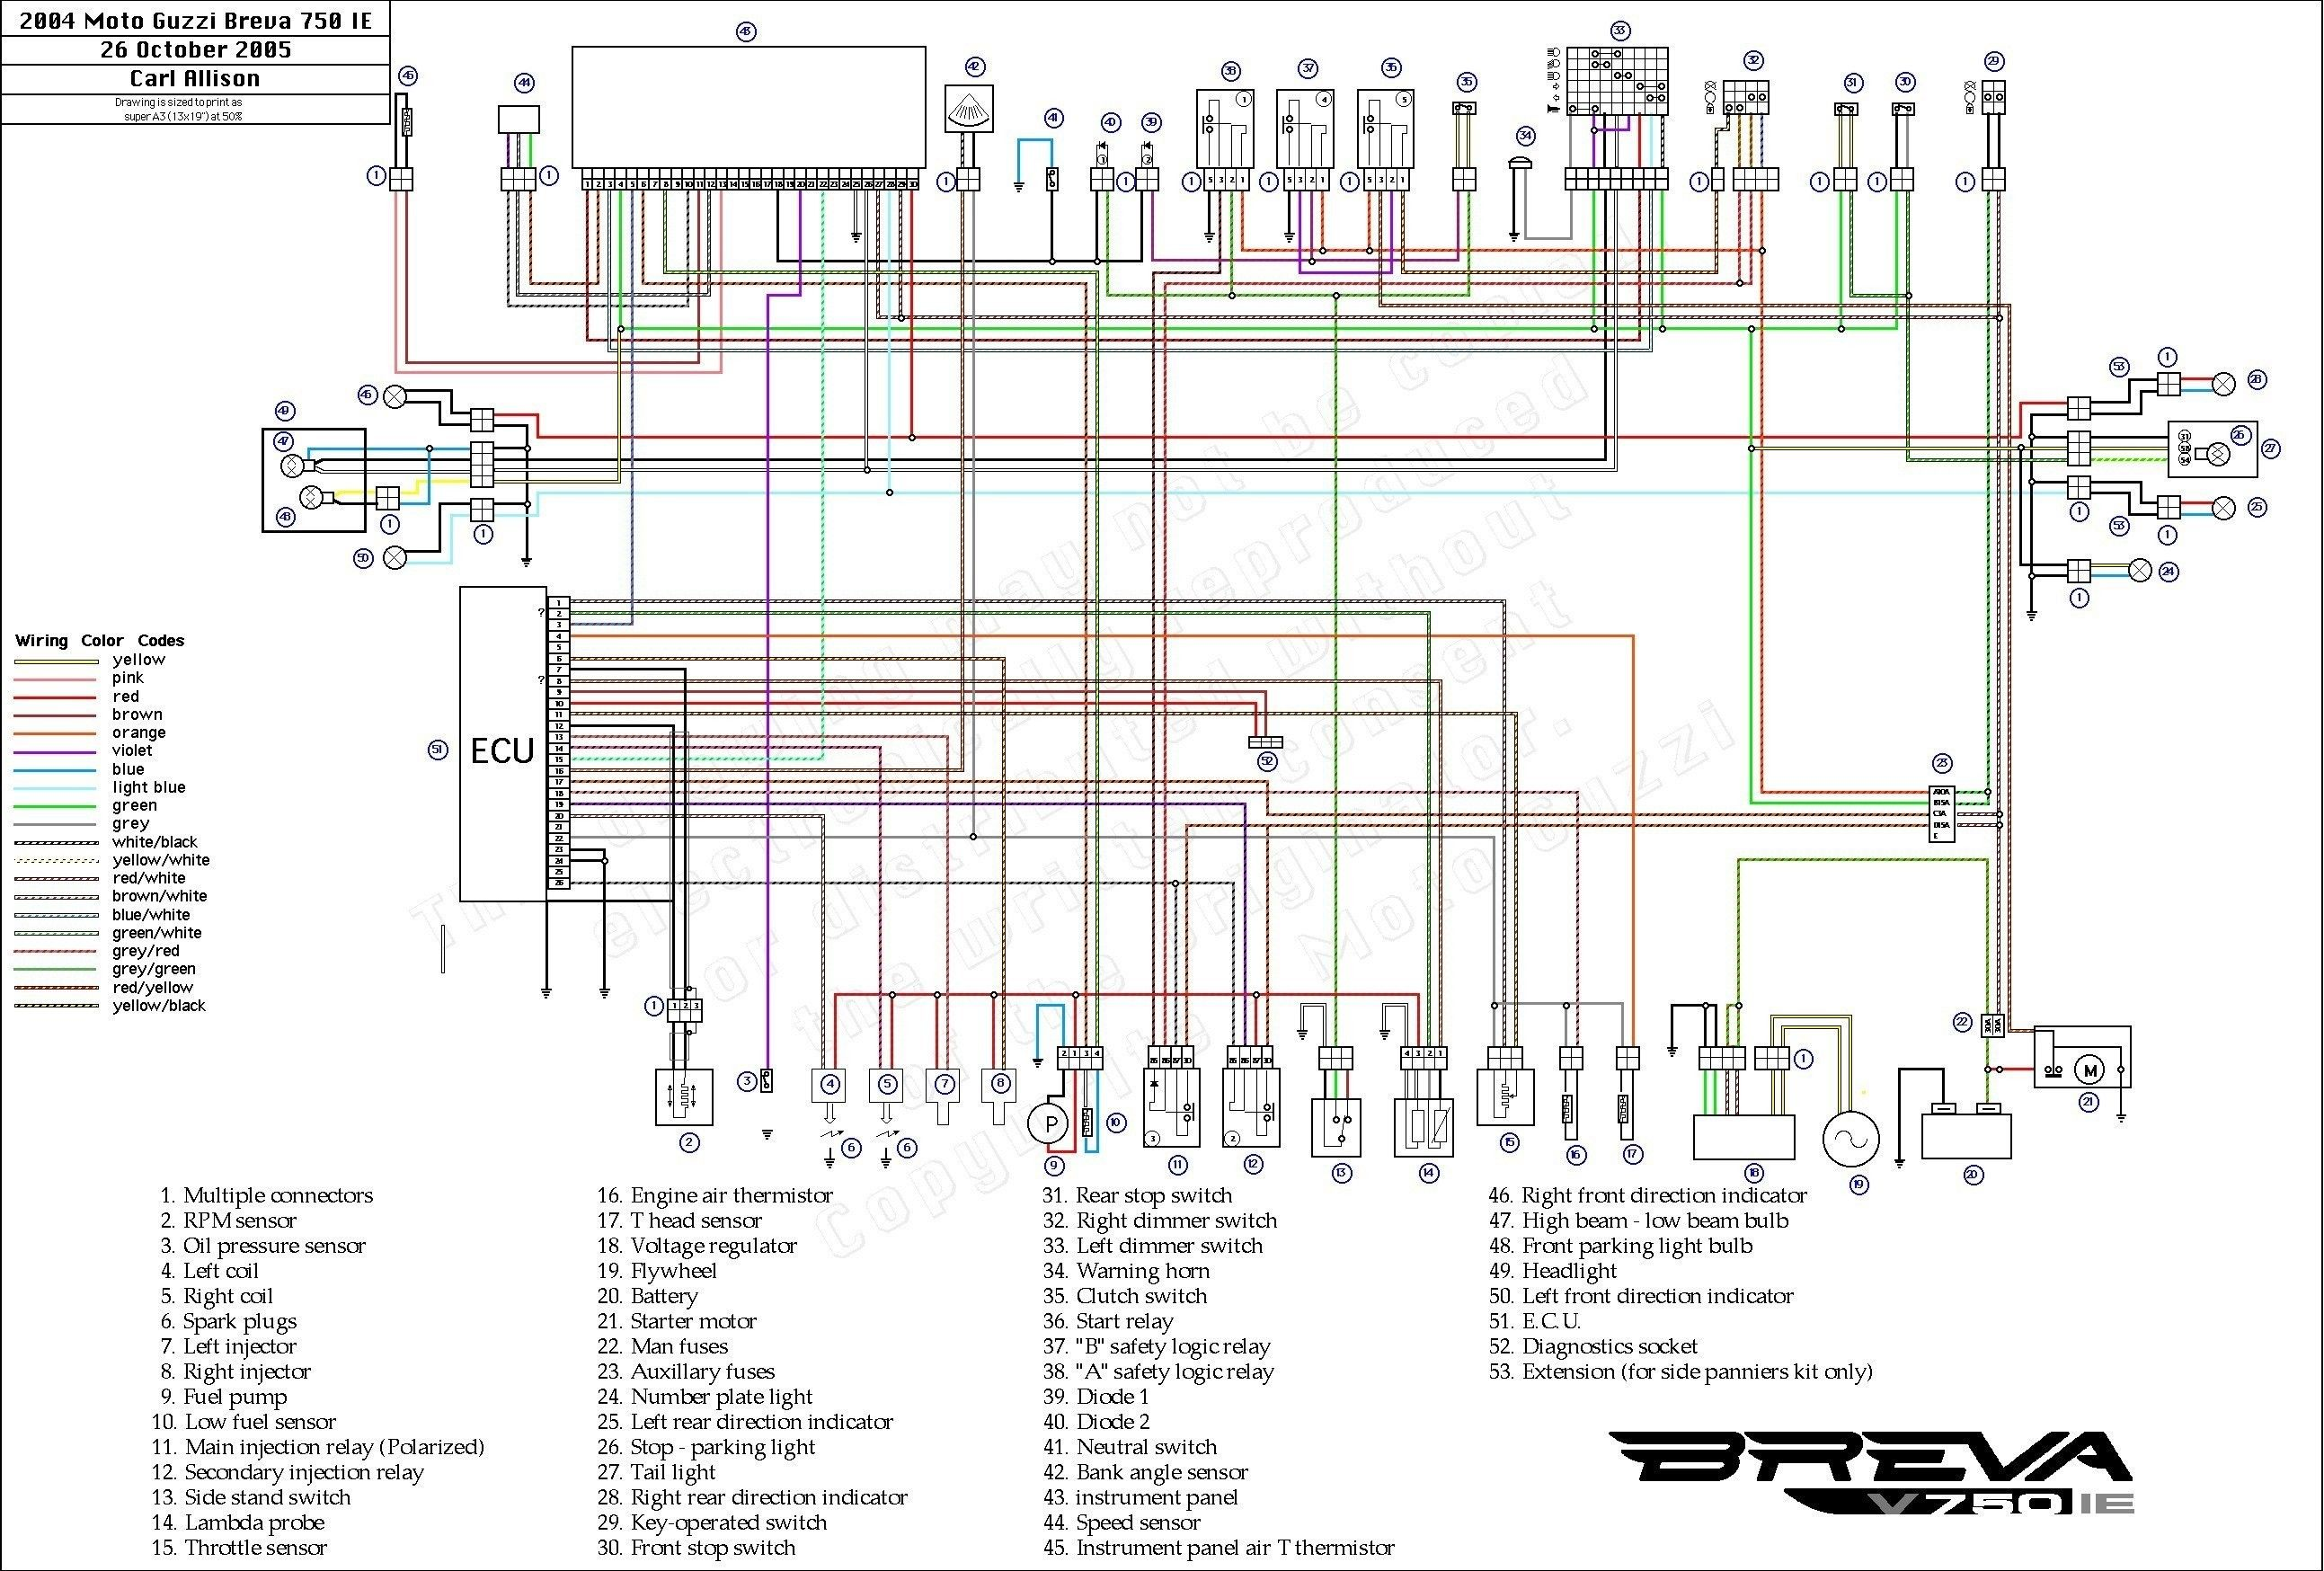 New 2004 Dodge Ram 1500 Trailer Wiring Diagram Diagram Diagramsample Diagramtemplate Wiringdiagram Diagramchart Worksheet Dodge Ram 1500 Dodge Ram Dodge